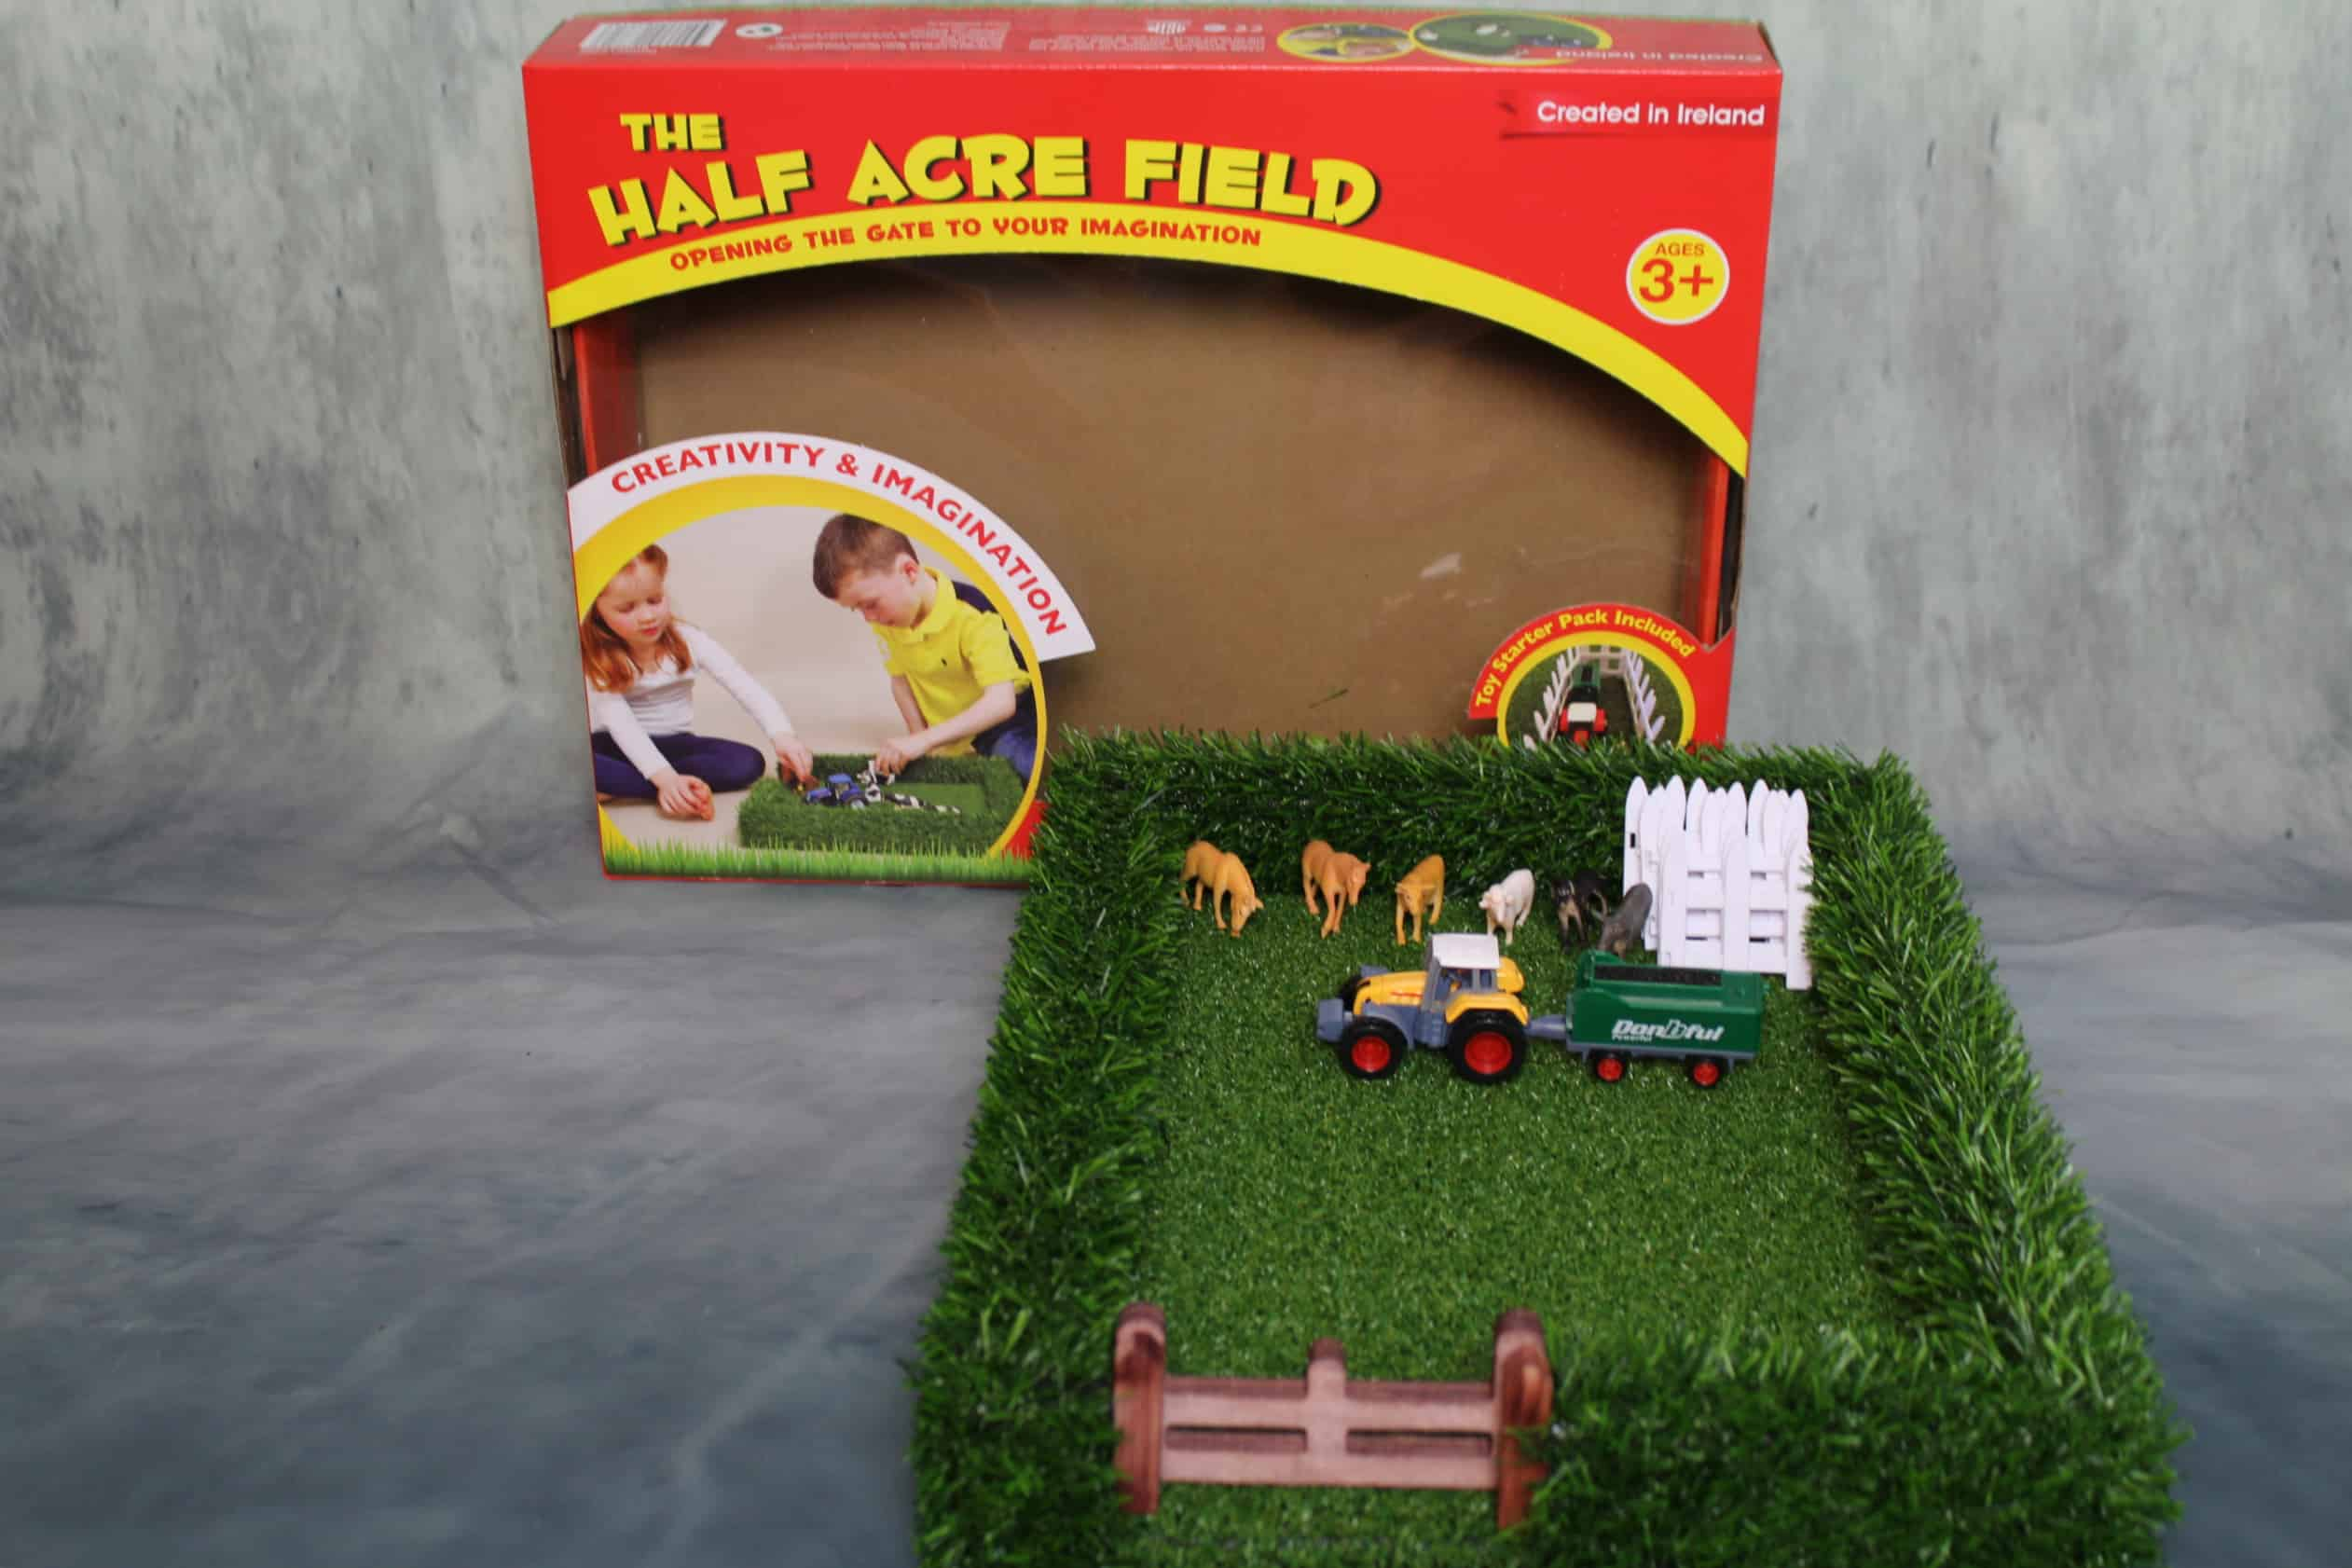 The Half Acre Field for kids